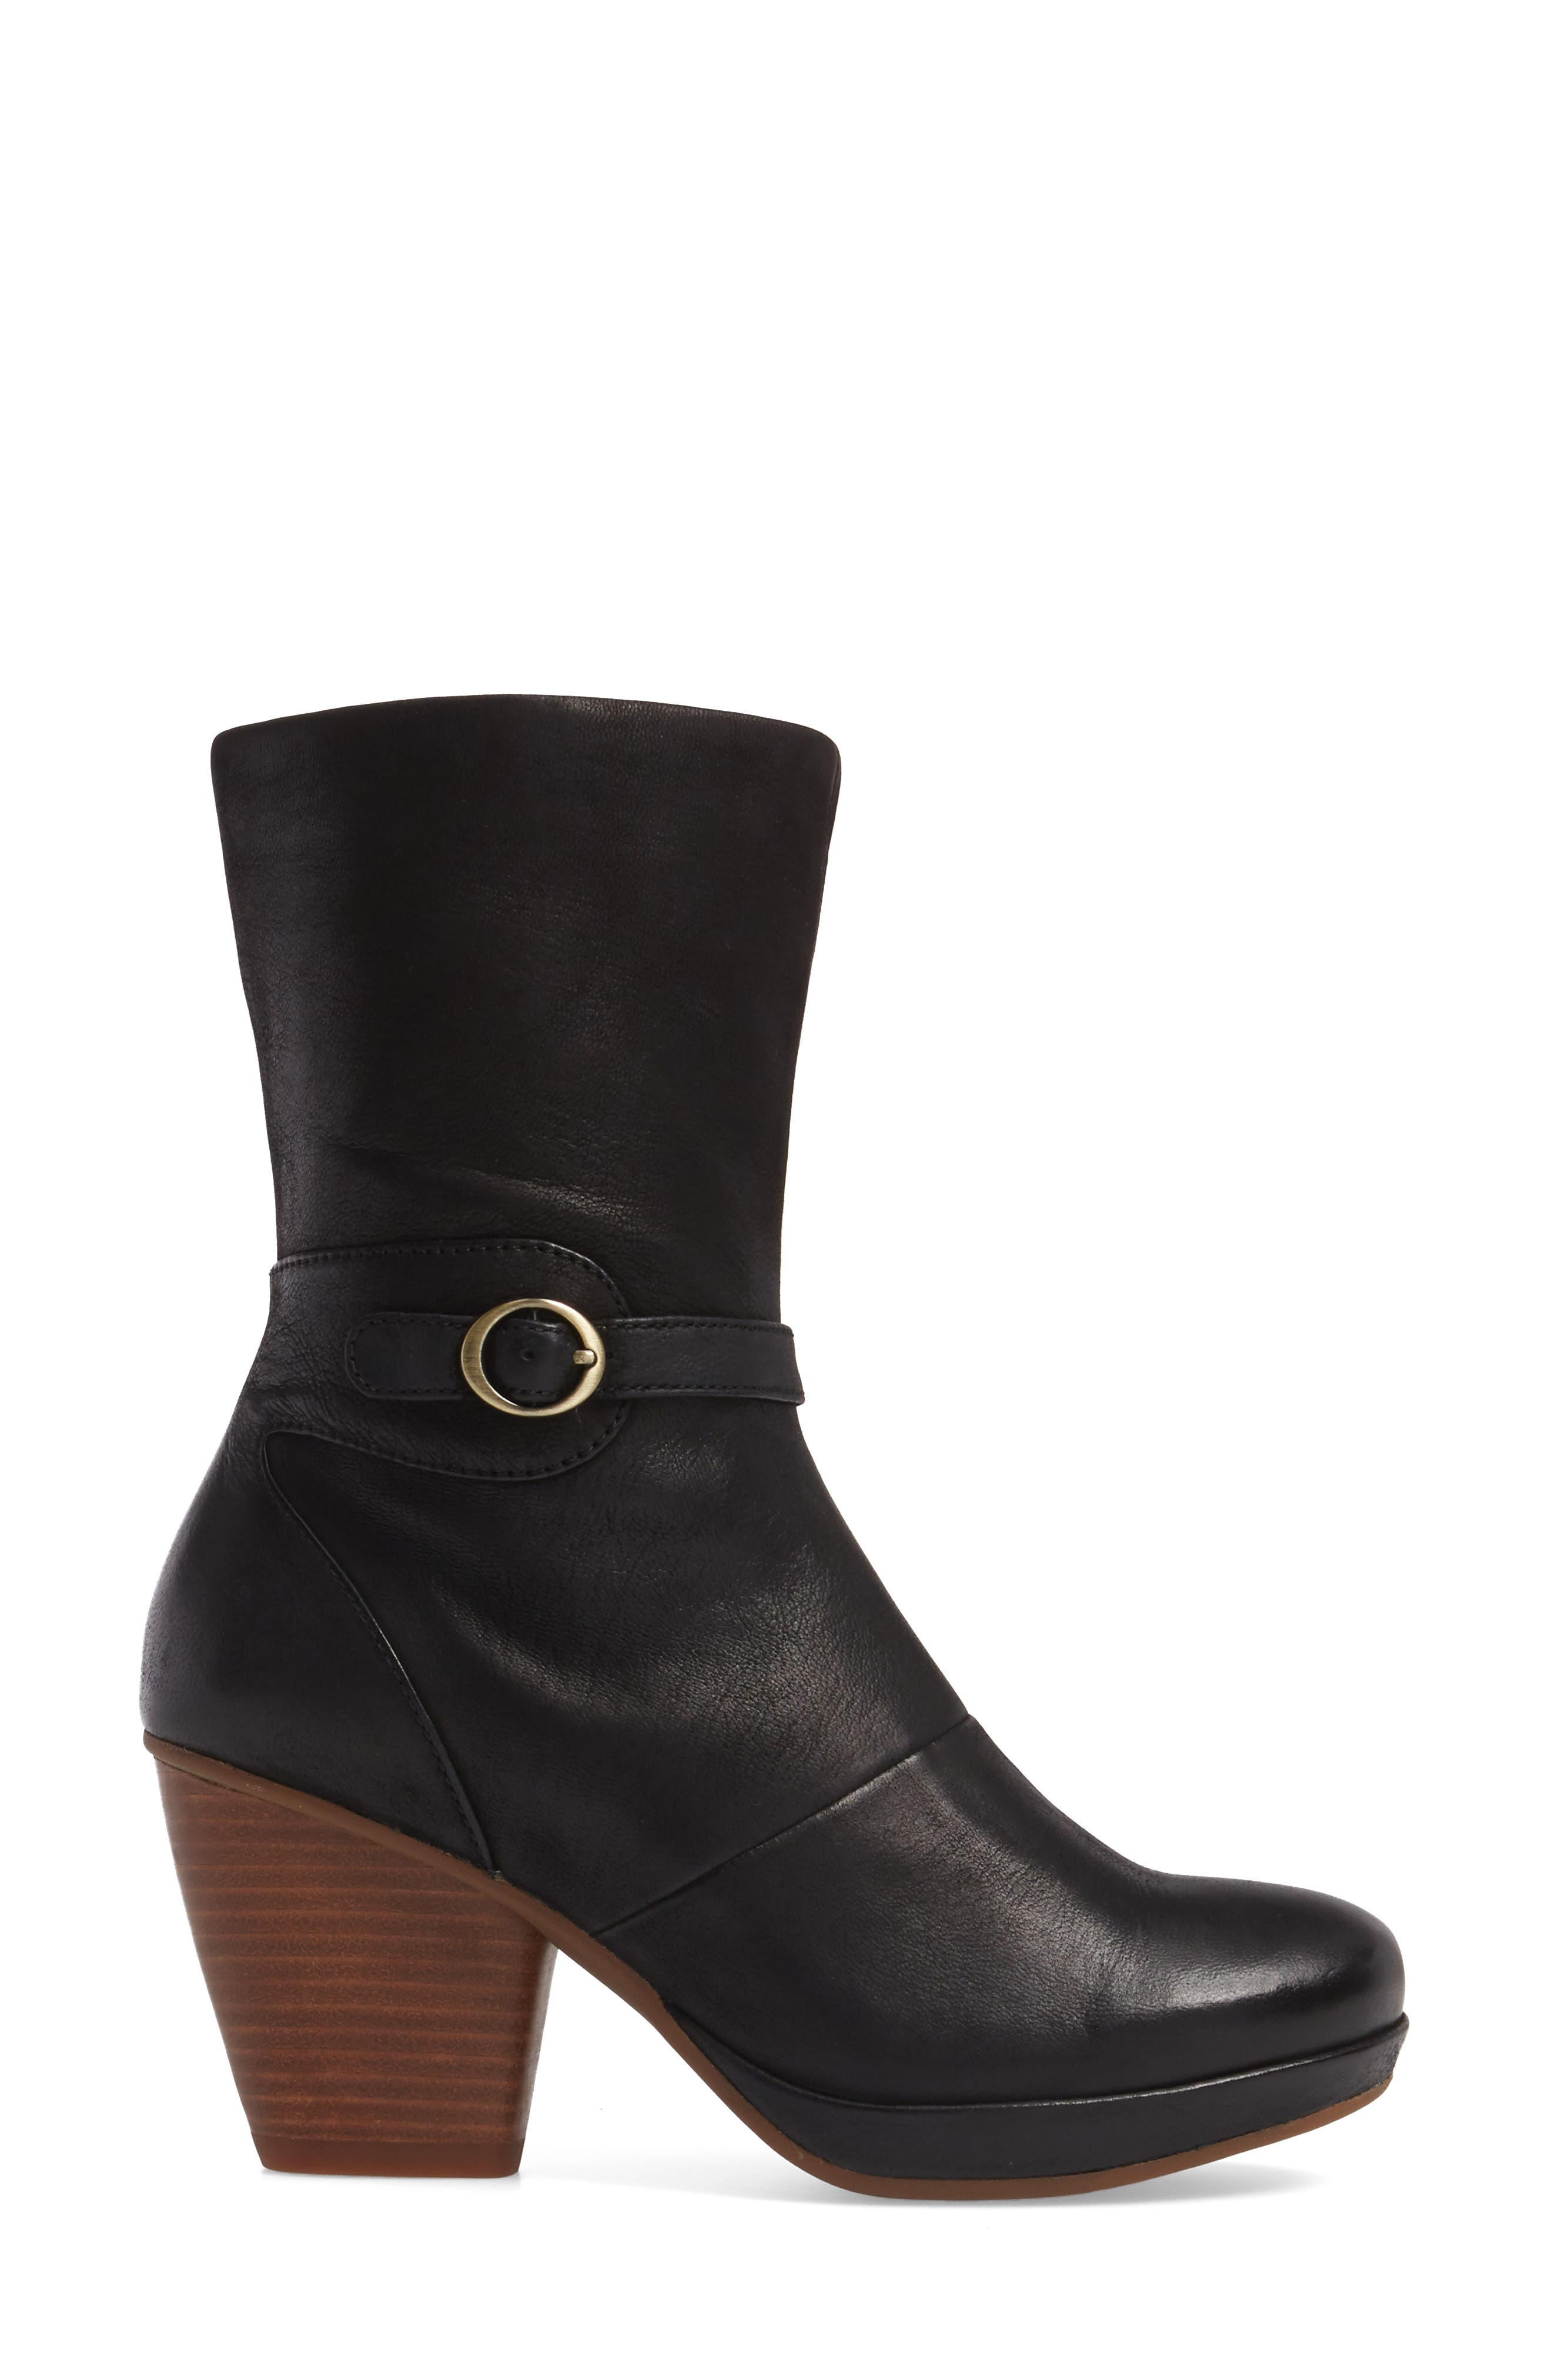 Marietta Boot,                             Alternate thumbnail 3, color,                             Black Burnished Nubuck Leather